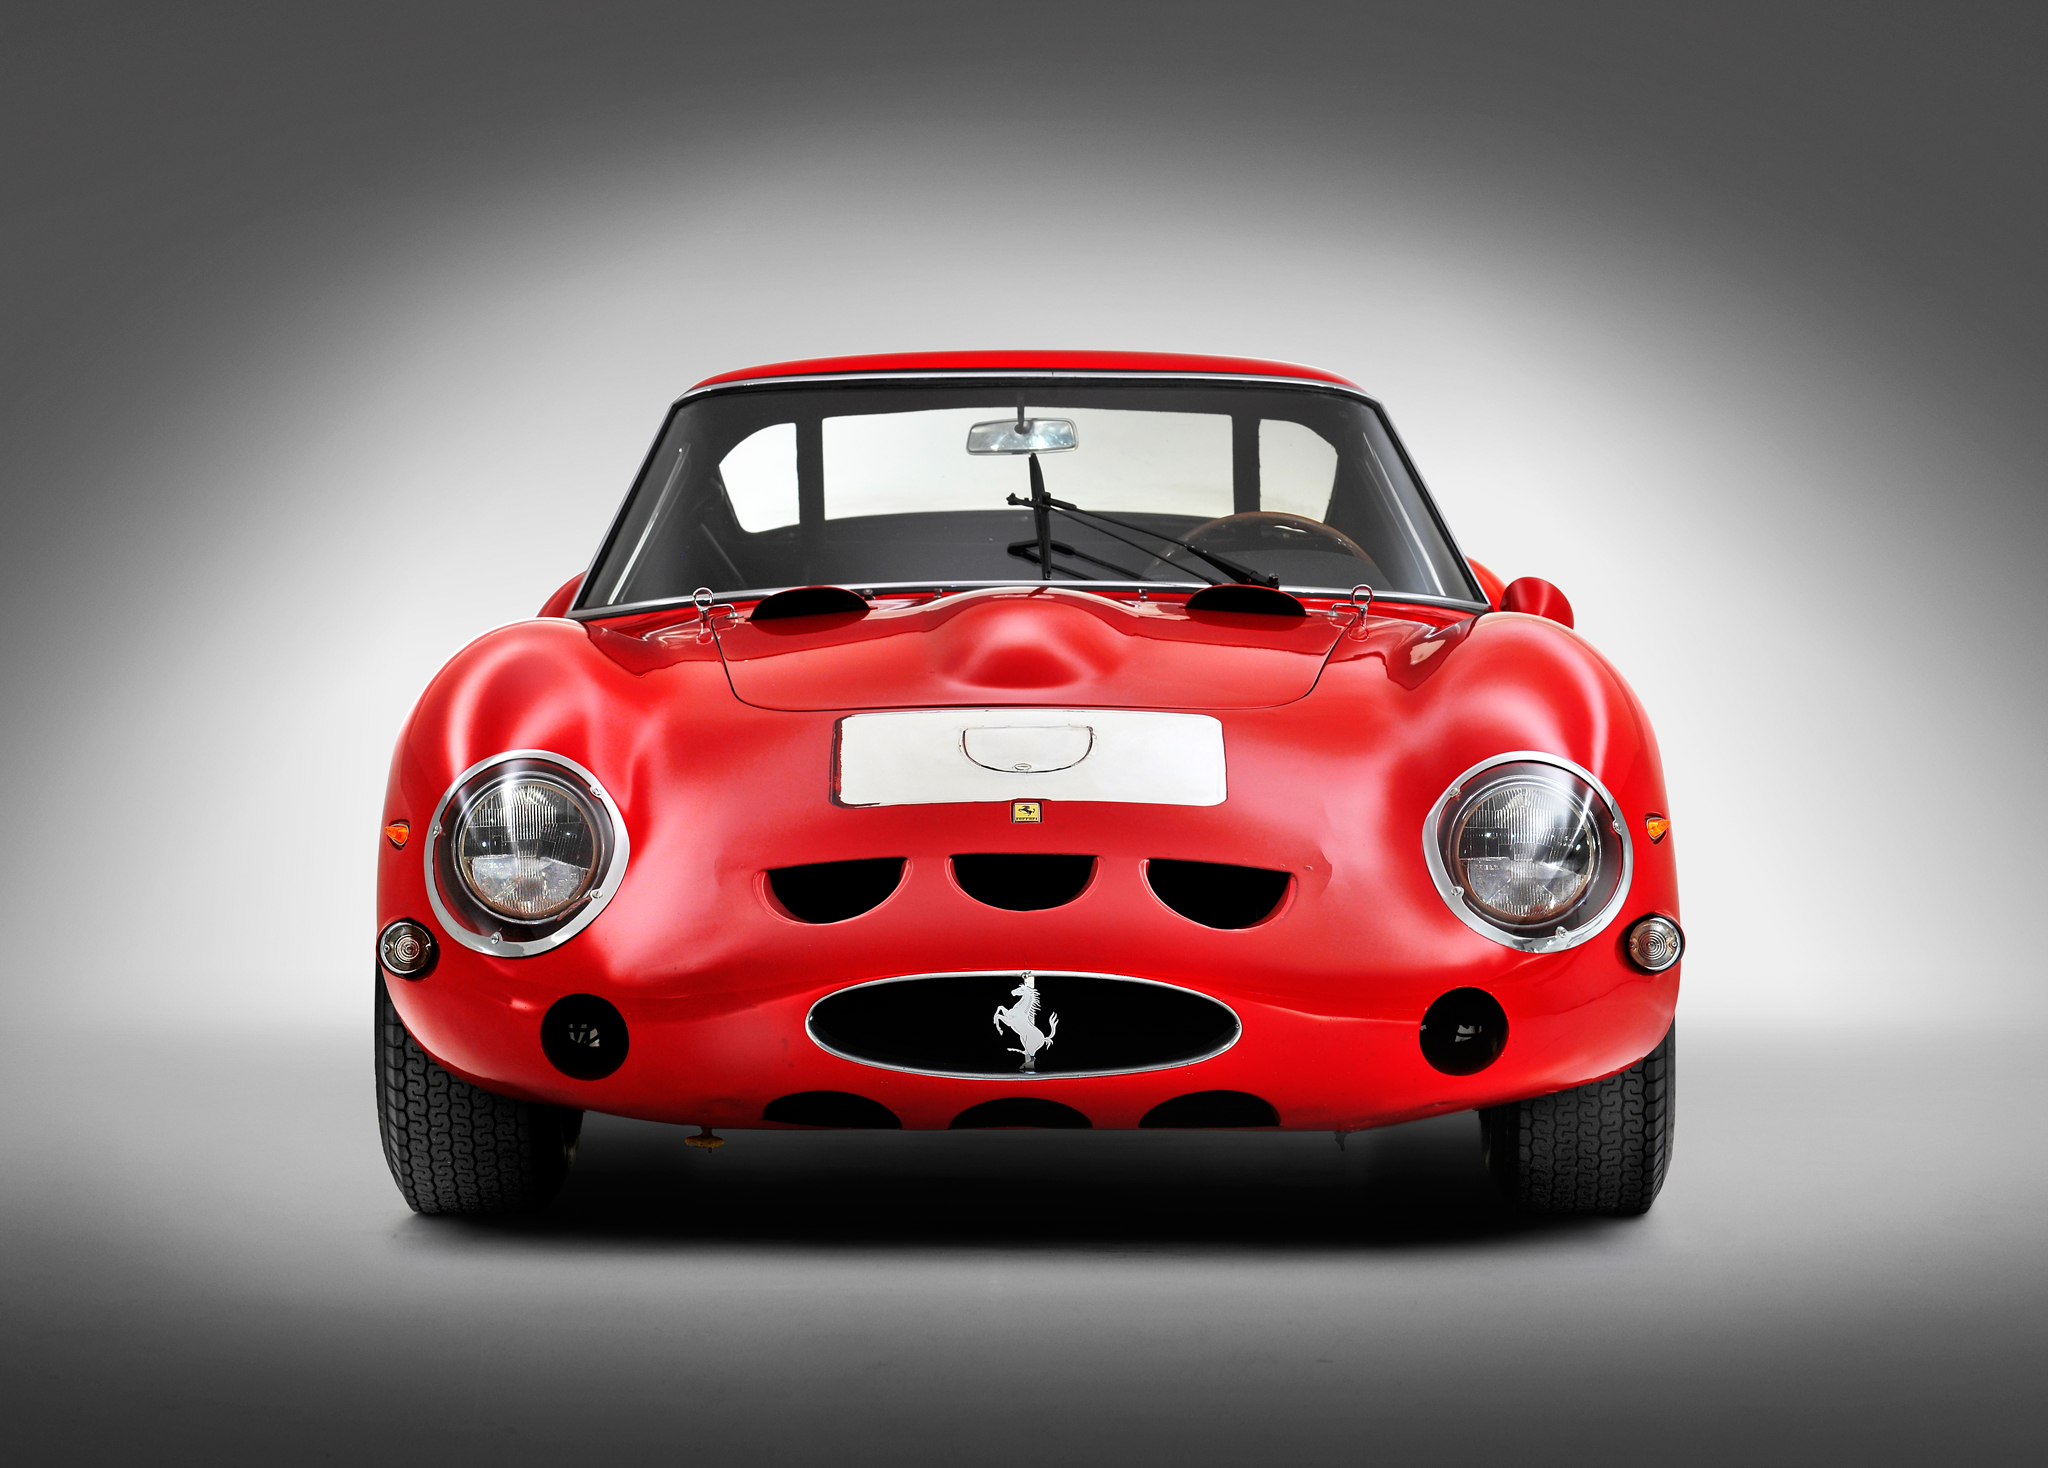 The 10 Most Expensive Cars Sold at North American Auctions in 2014